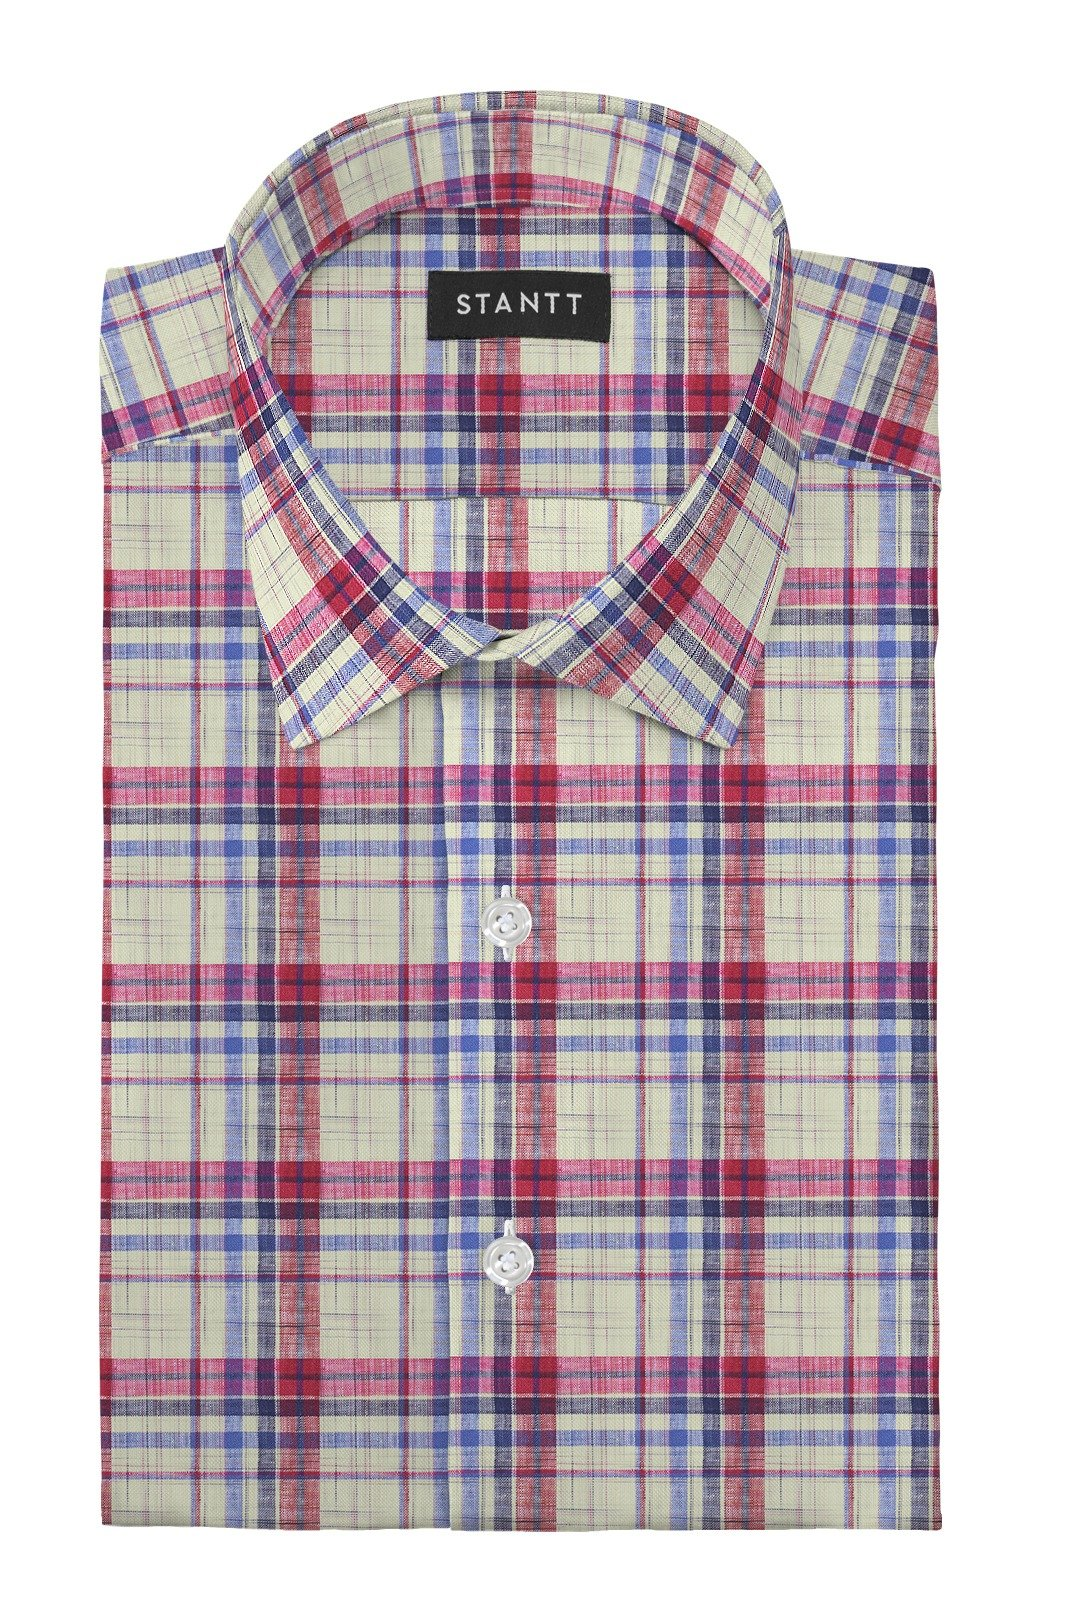 Linen Red Multi Plaid: Modified-Spread Collar, Barrel Cuff